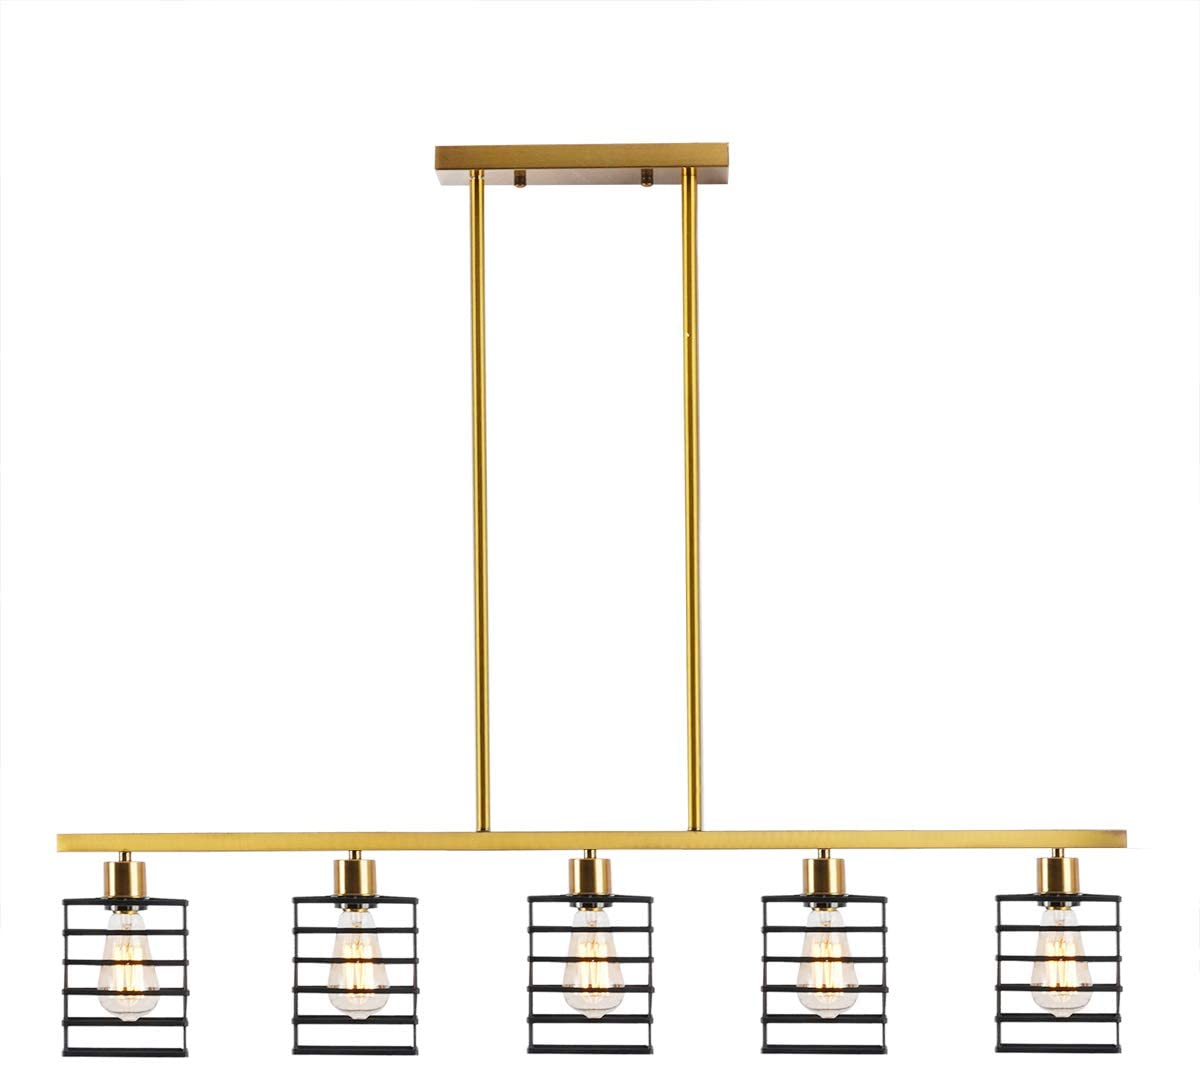 BAODEN 5-Light Industrial Kitchen Island Pendant Lighting Brushed Brass Modern Linear Ceiling Light Fixtures with Matte Black Metal Cage Shades Semi Flush Mount Farmhouse Chandelier for Dining Room